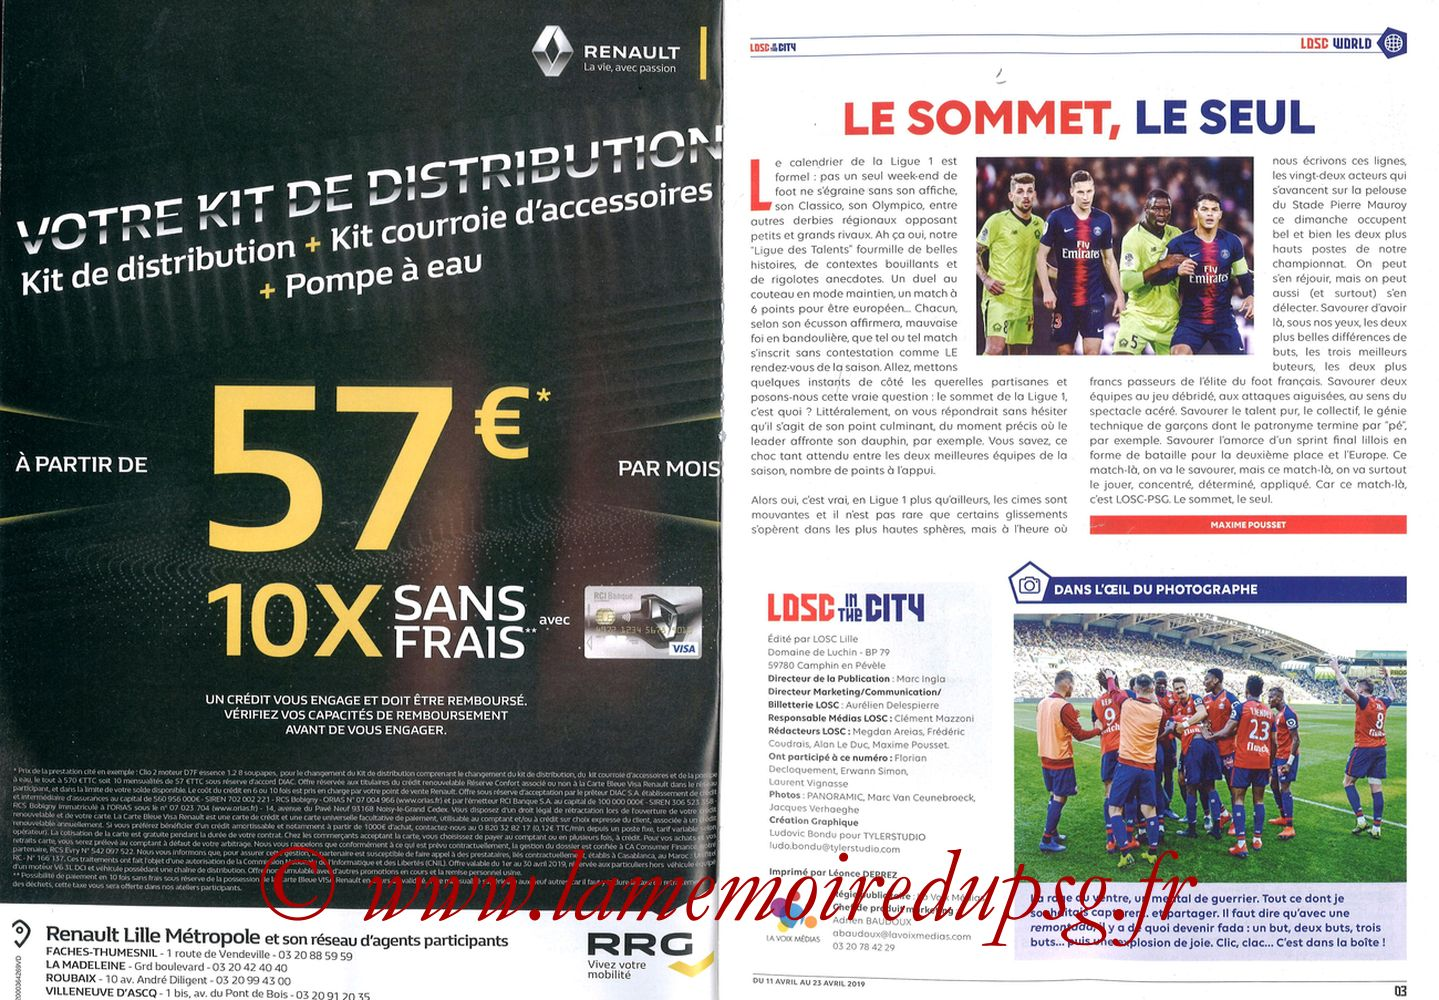 2019-04-14  Lille-PSG (32ème L1, LOSC In the City N° 28) - Pages 02 et 03